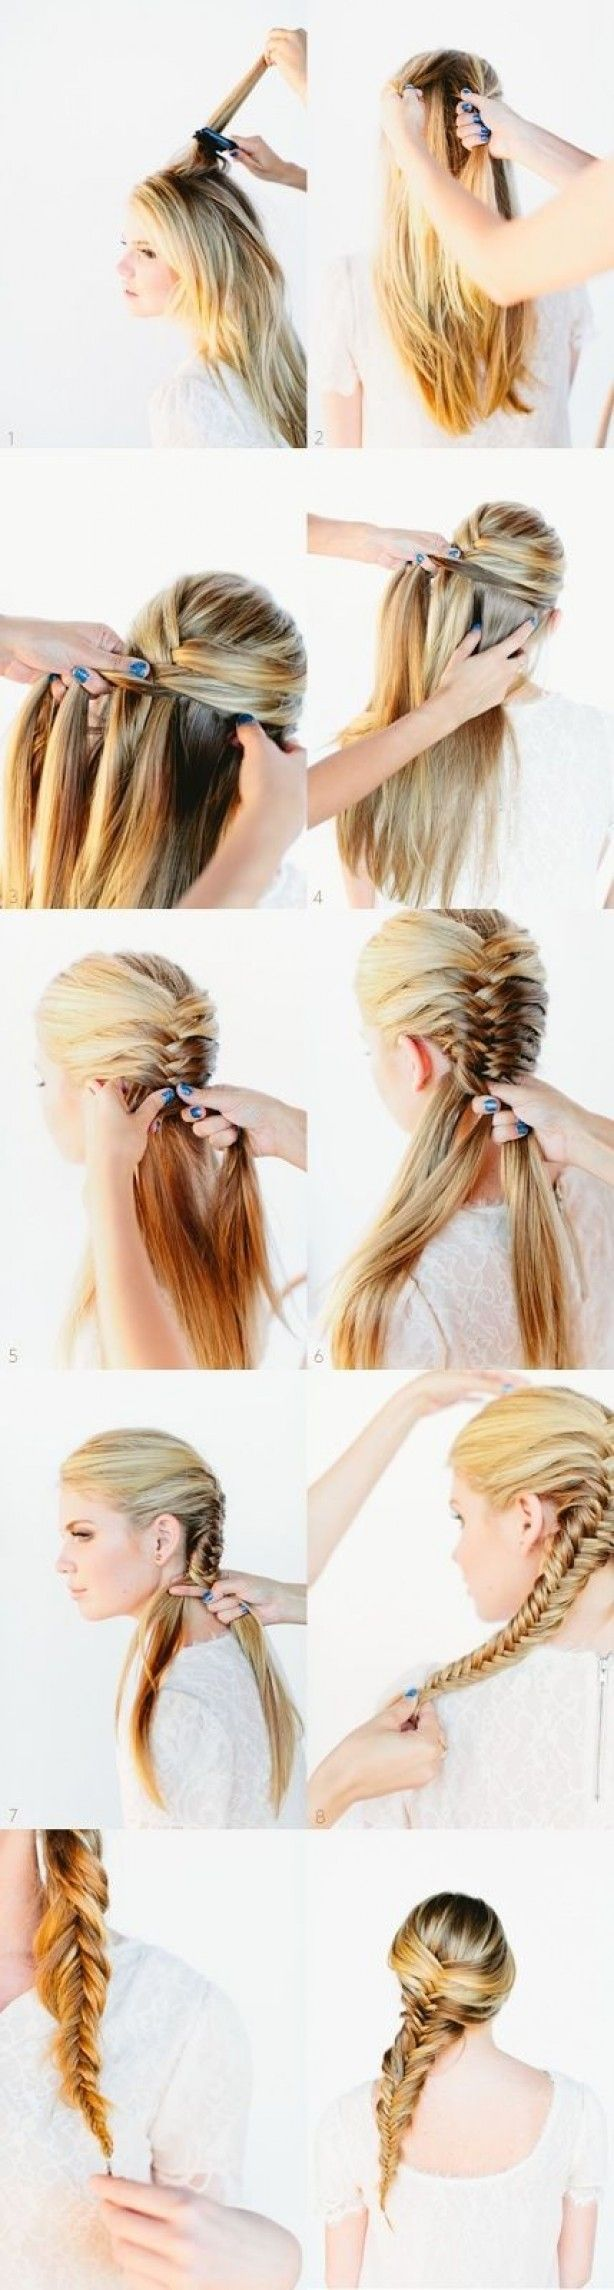 how to do a sideways fishtail braid